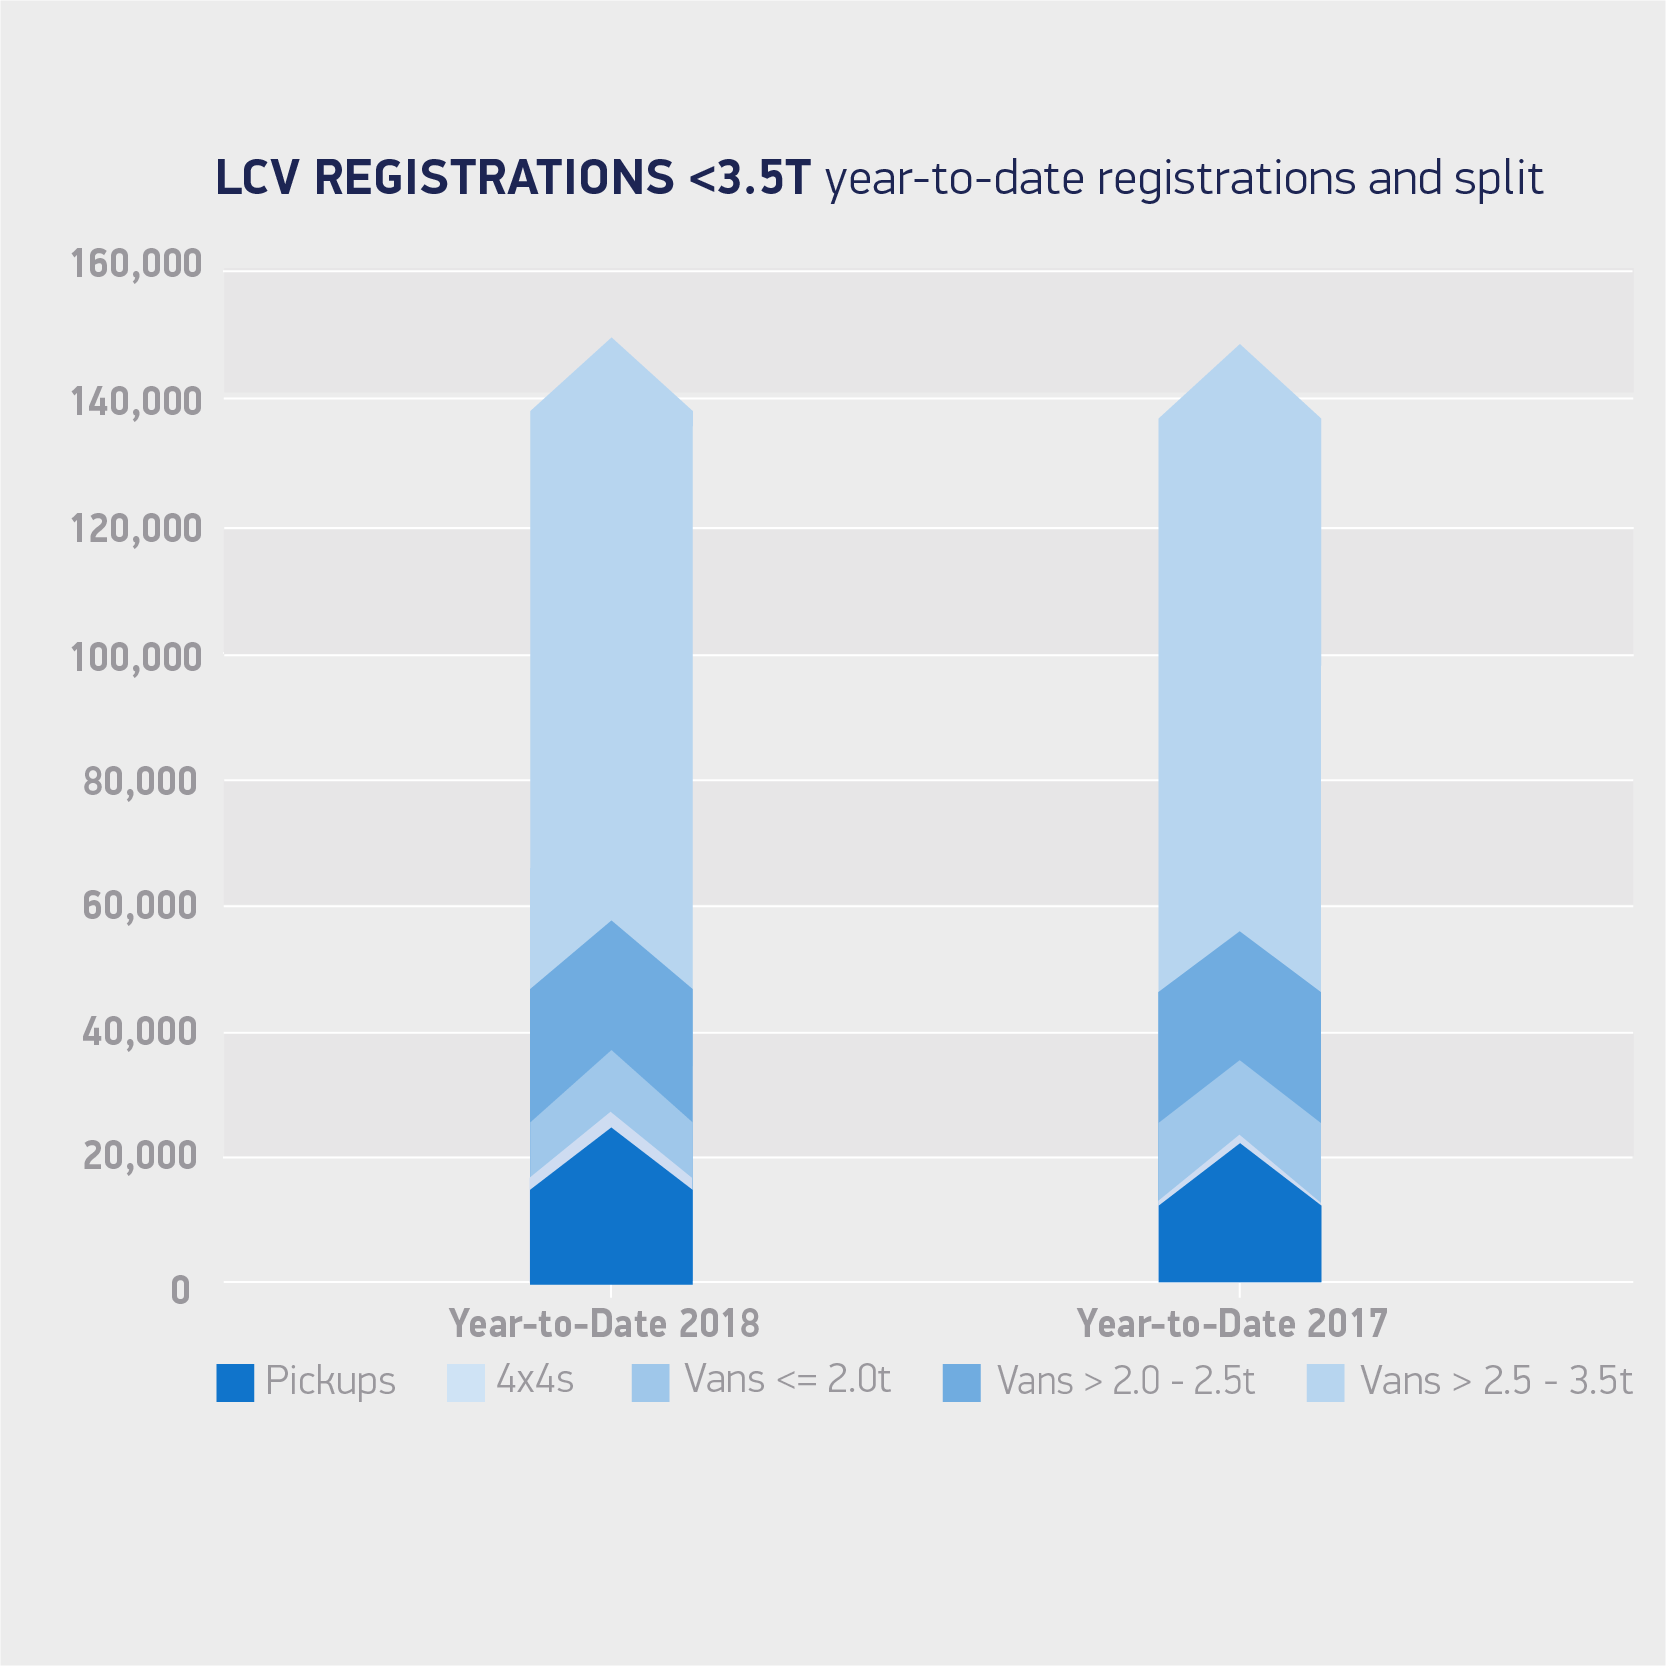 Van registrations 3 5T year-to-date registrations and split May 18